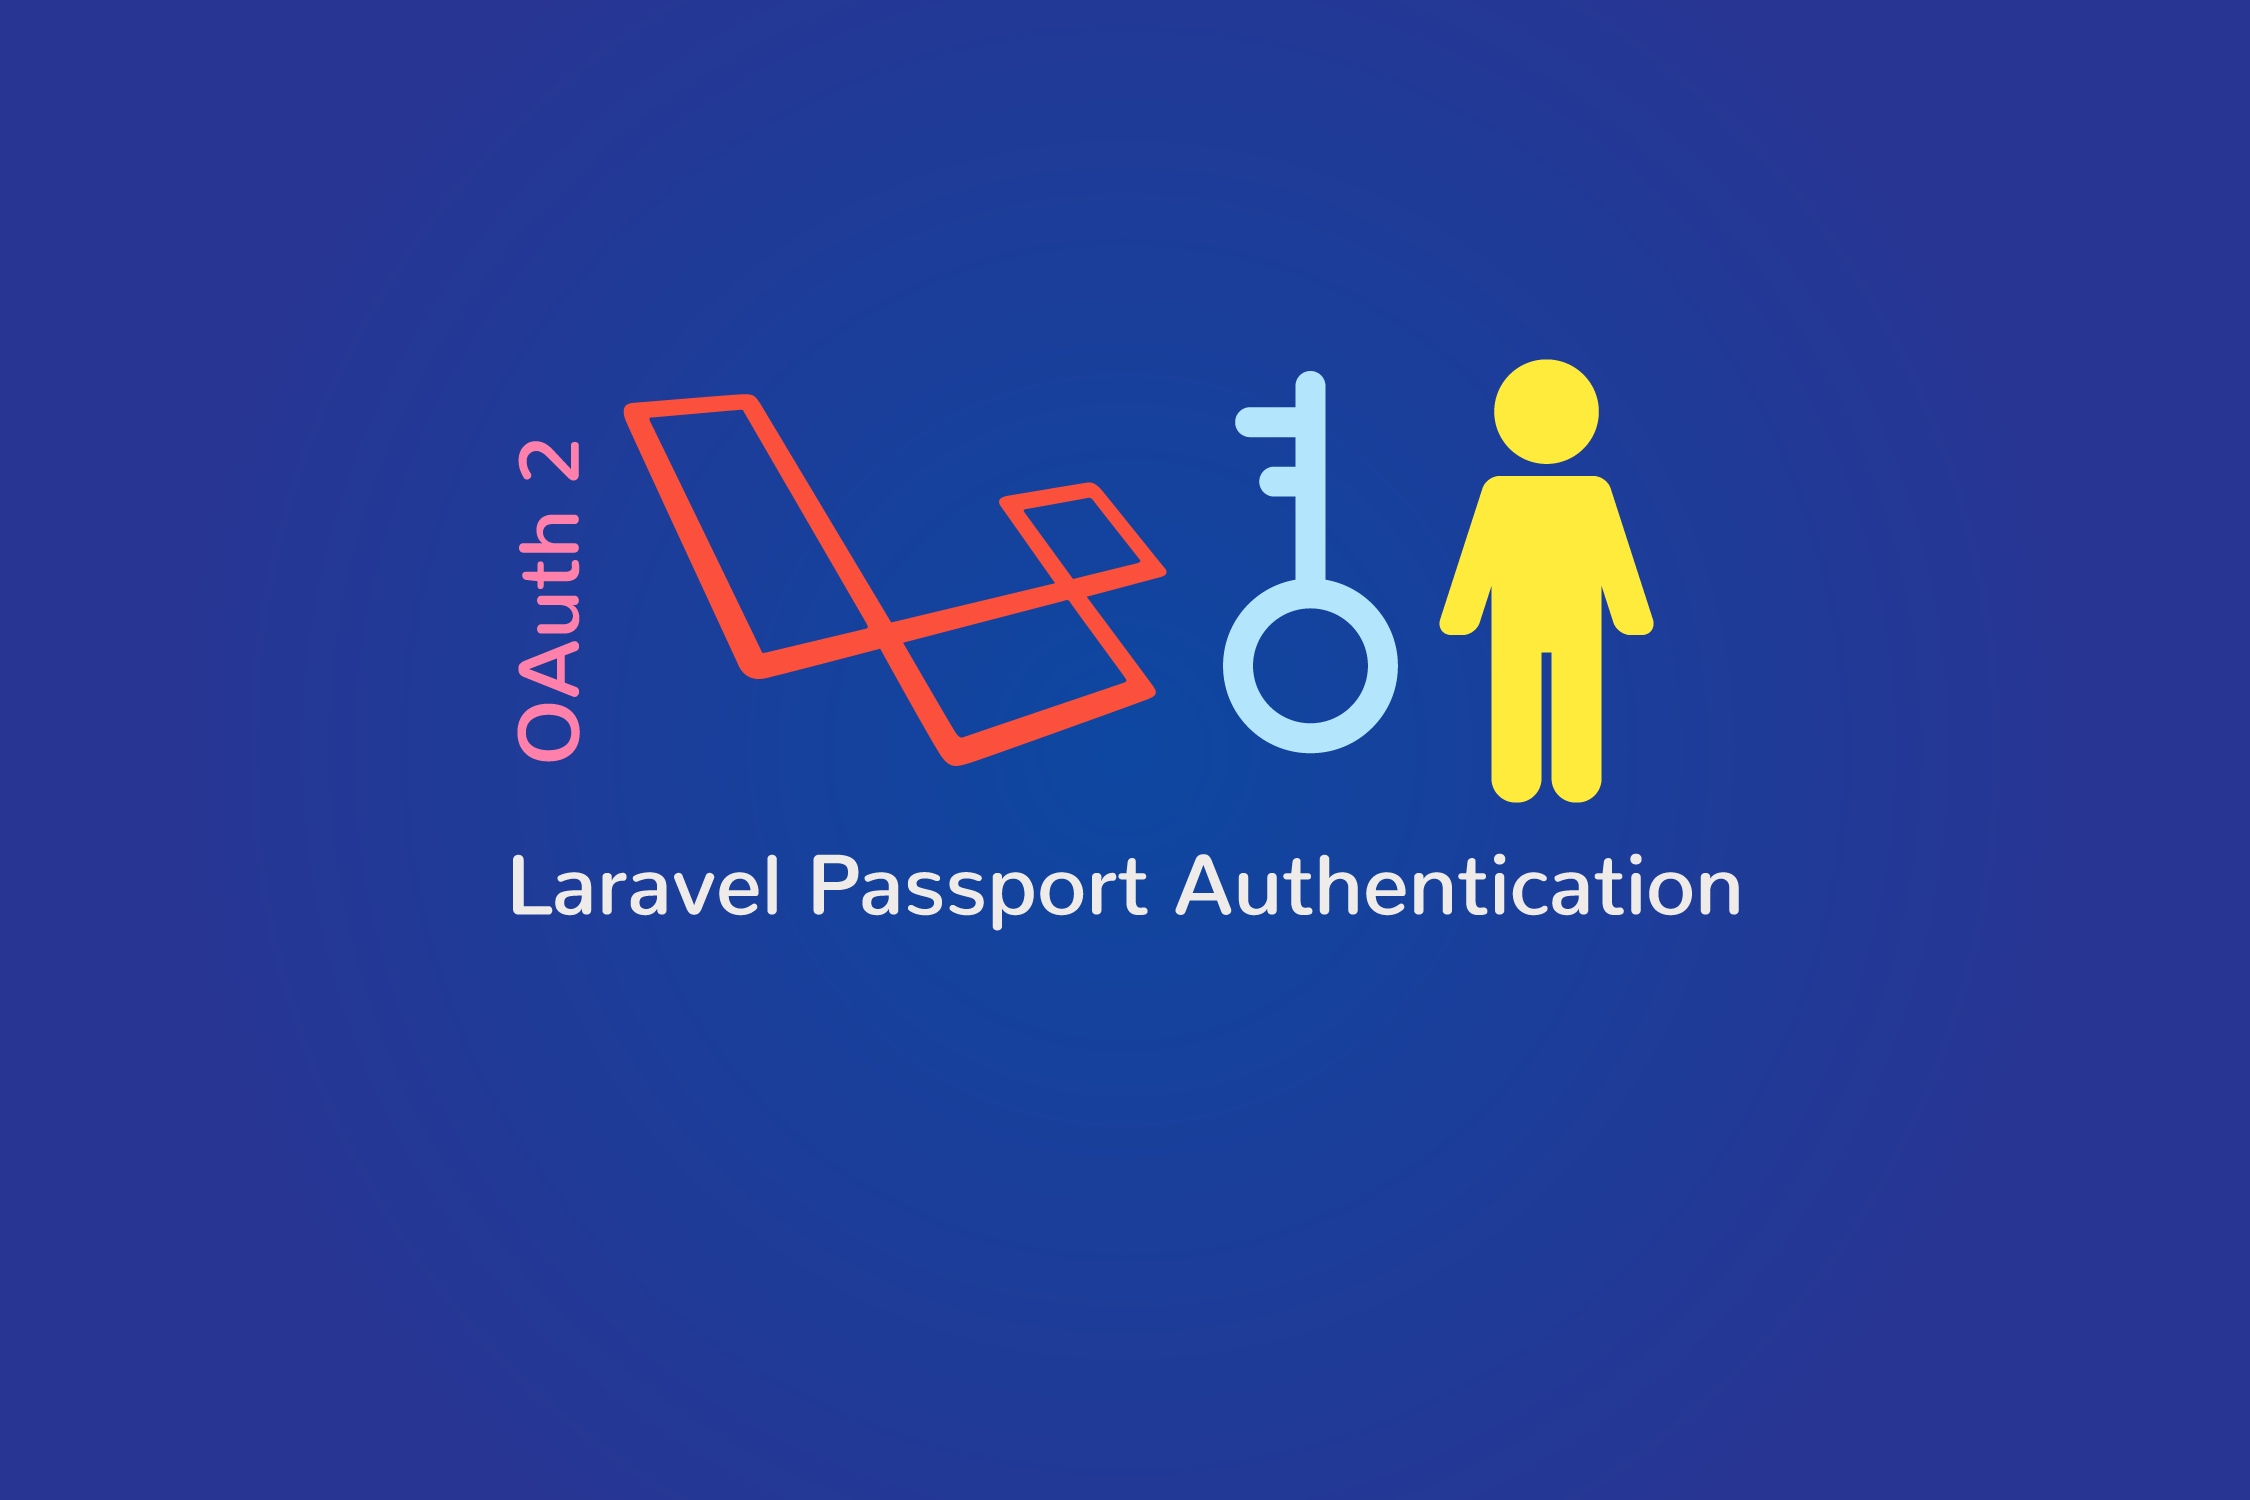 Laravel Passport Authentication